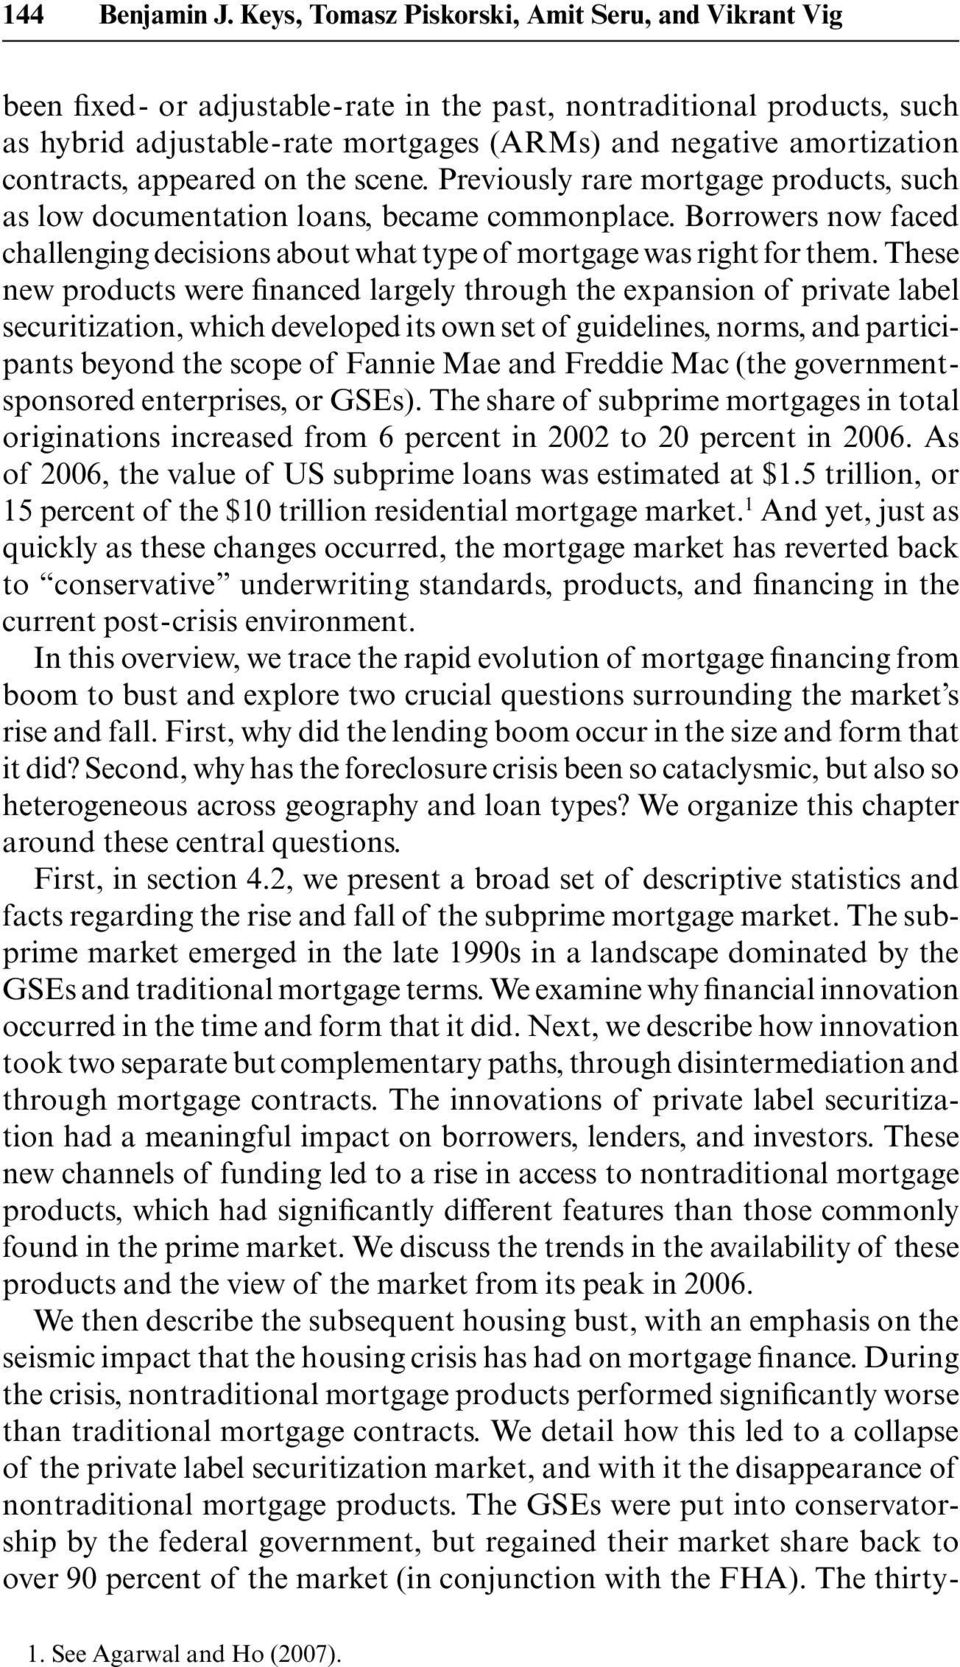 contracts, appeared on the scene. Previously rare mortgage products, such as low documentation loans, became commonplace.